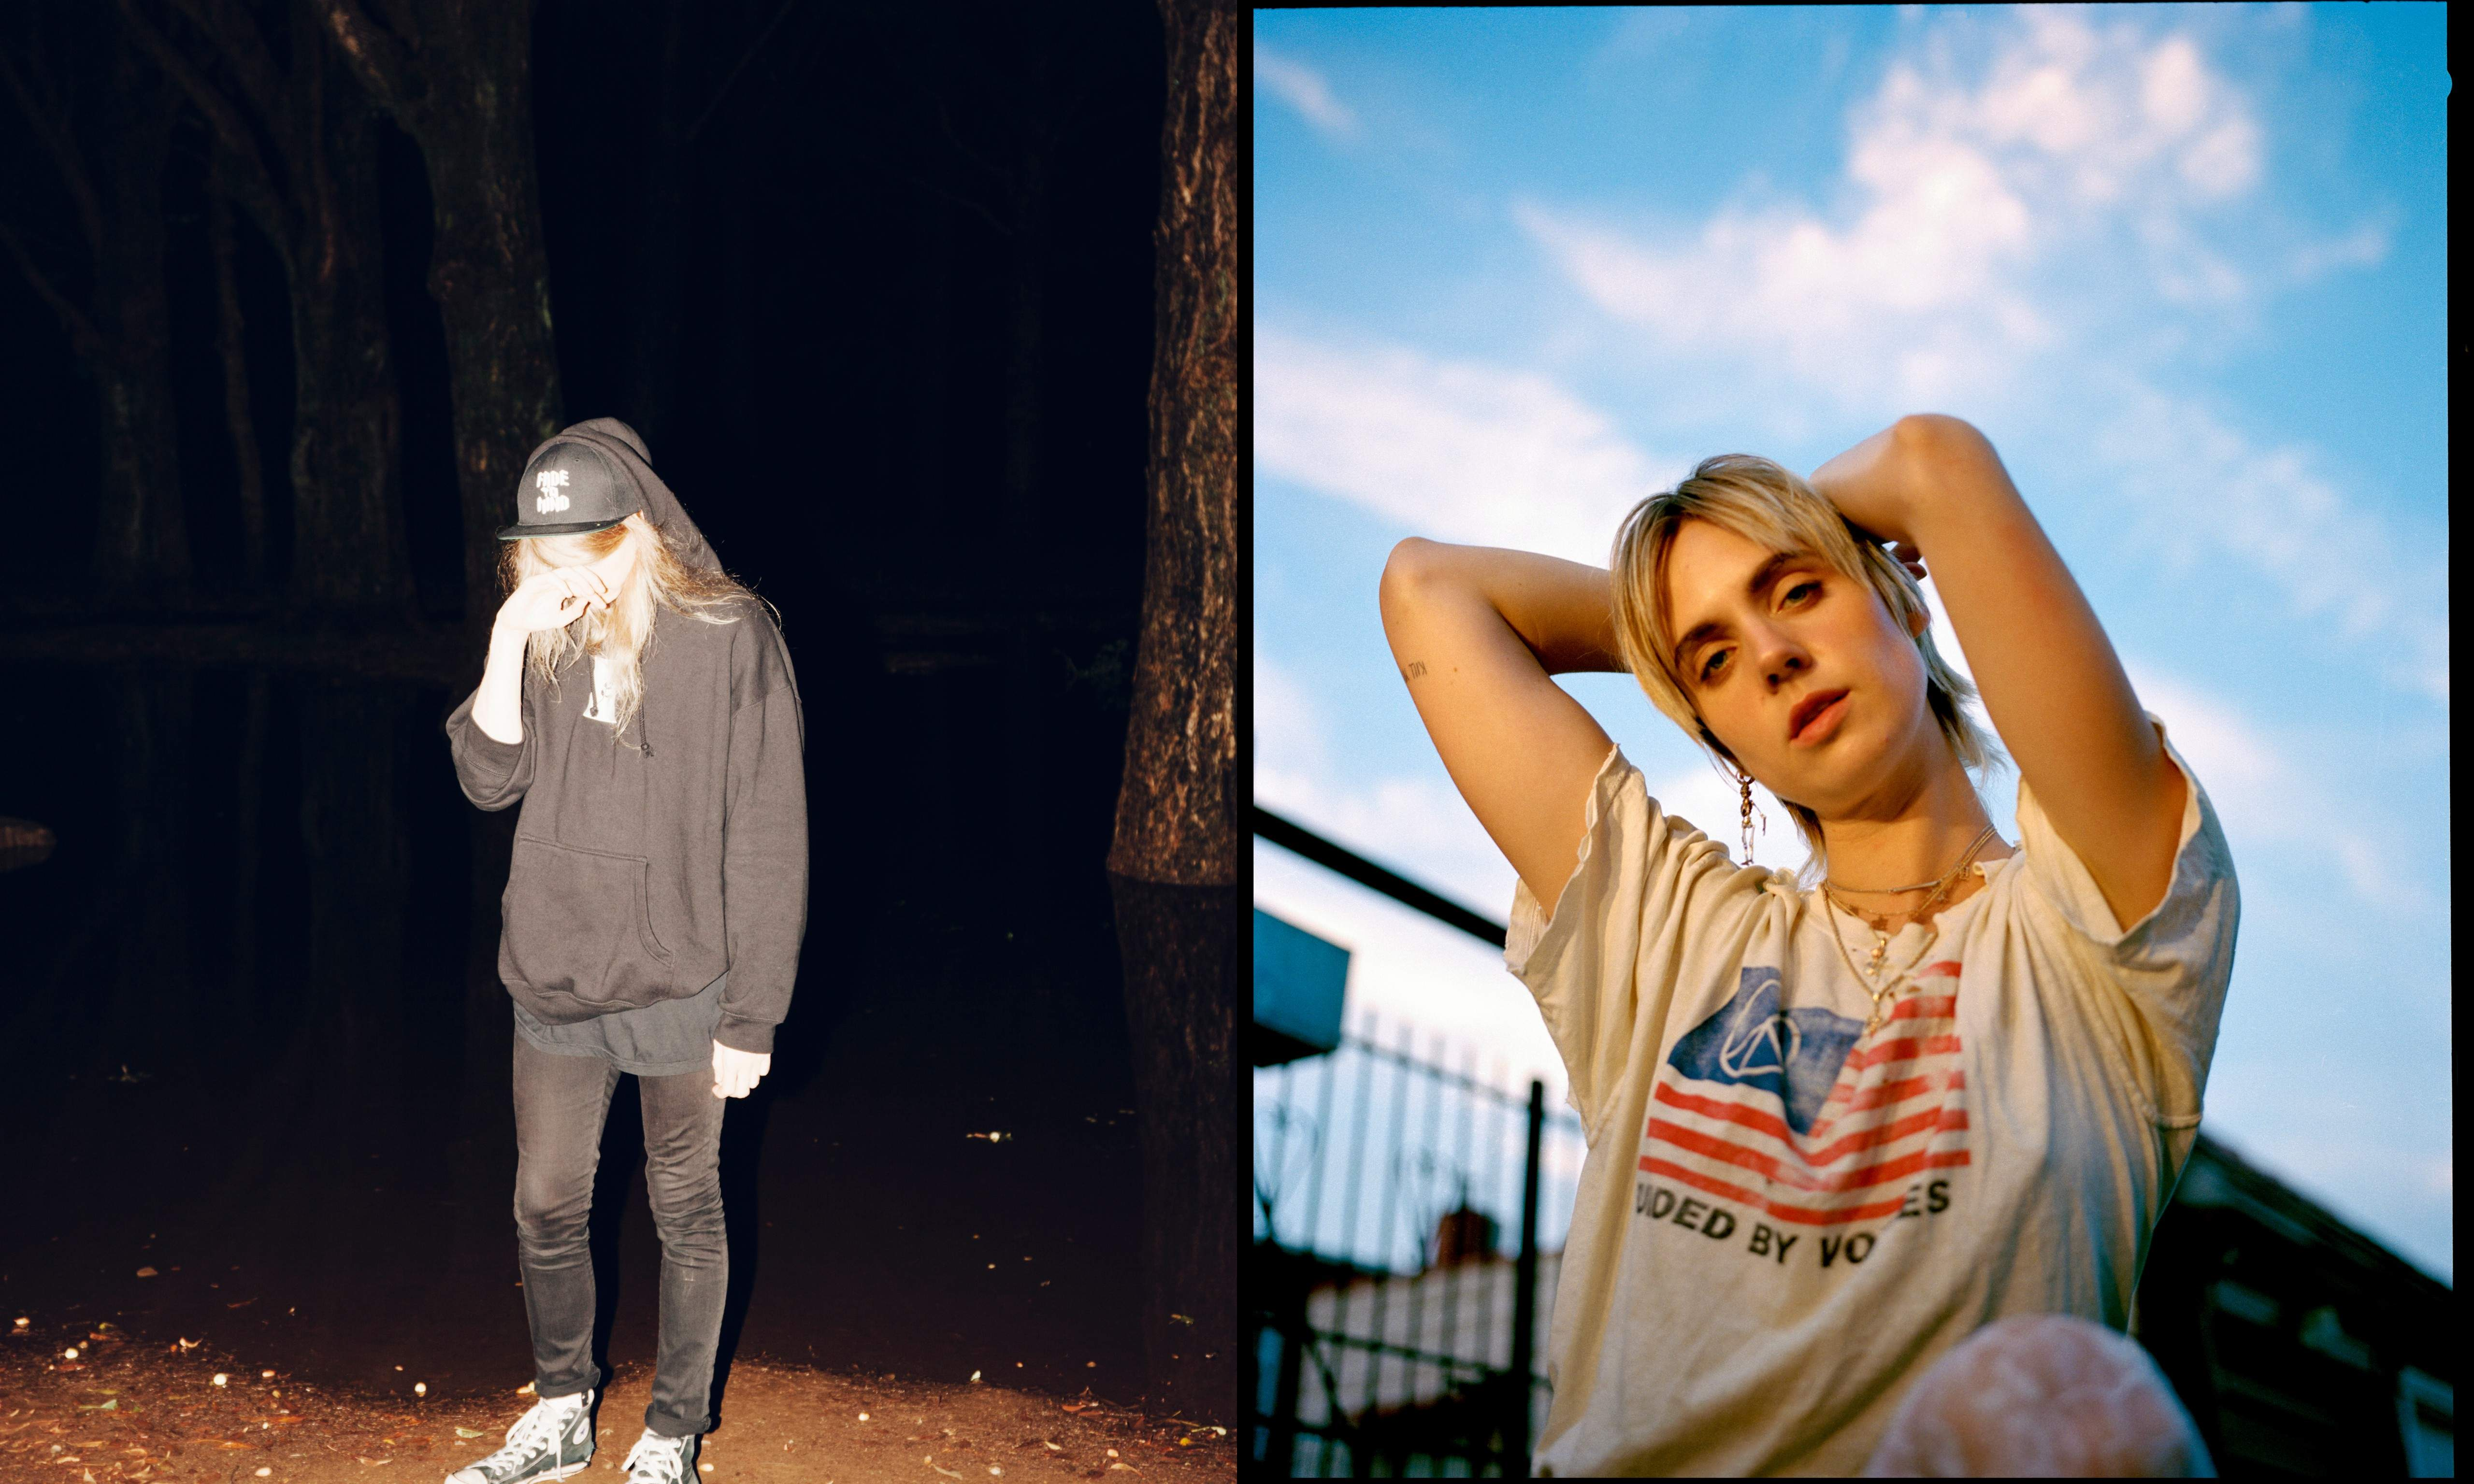 Win tickets to see MØ & Cashmere Cat in Montreal January 20 tour ariana grande diplo final song osheaga